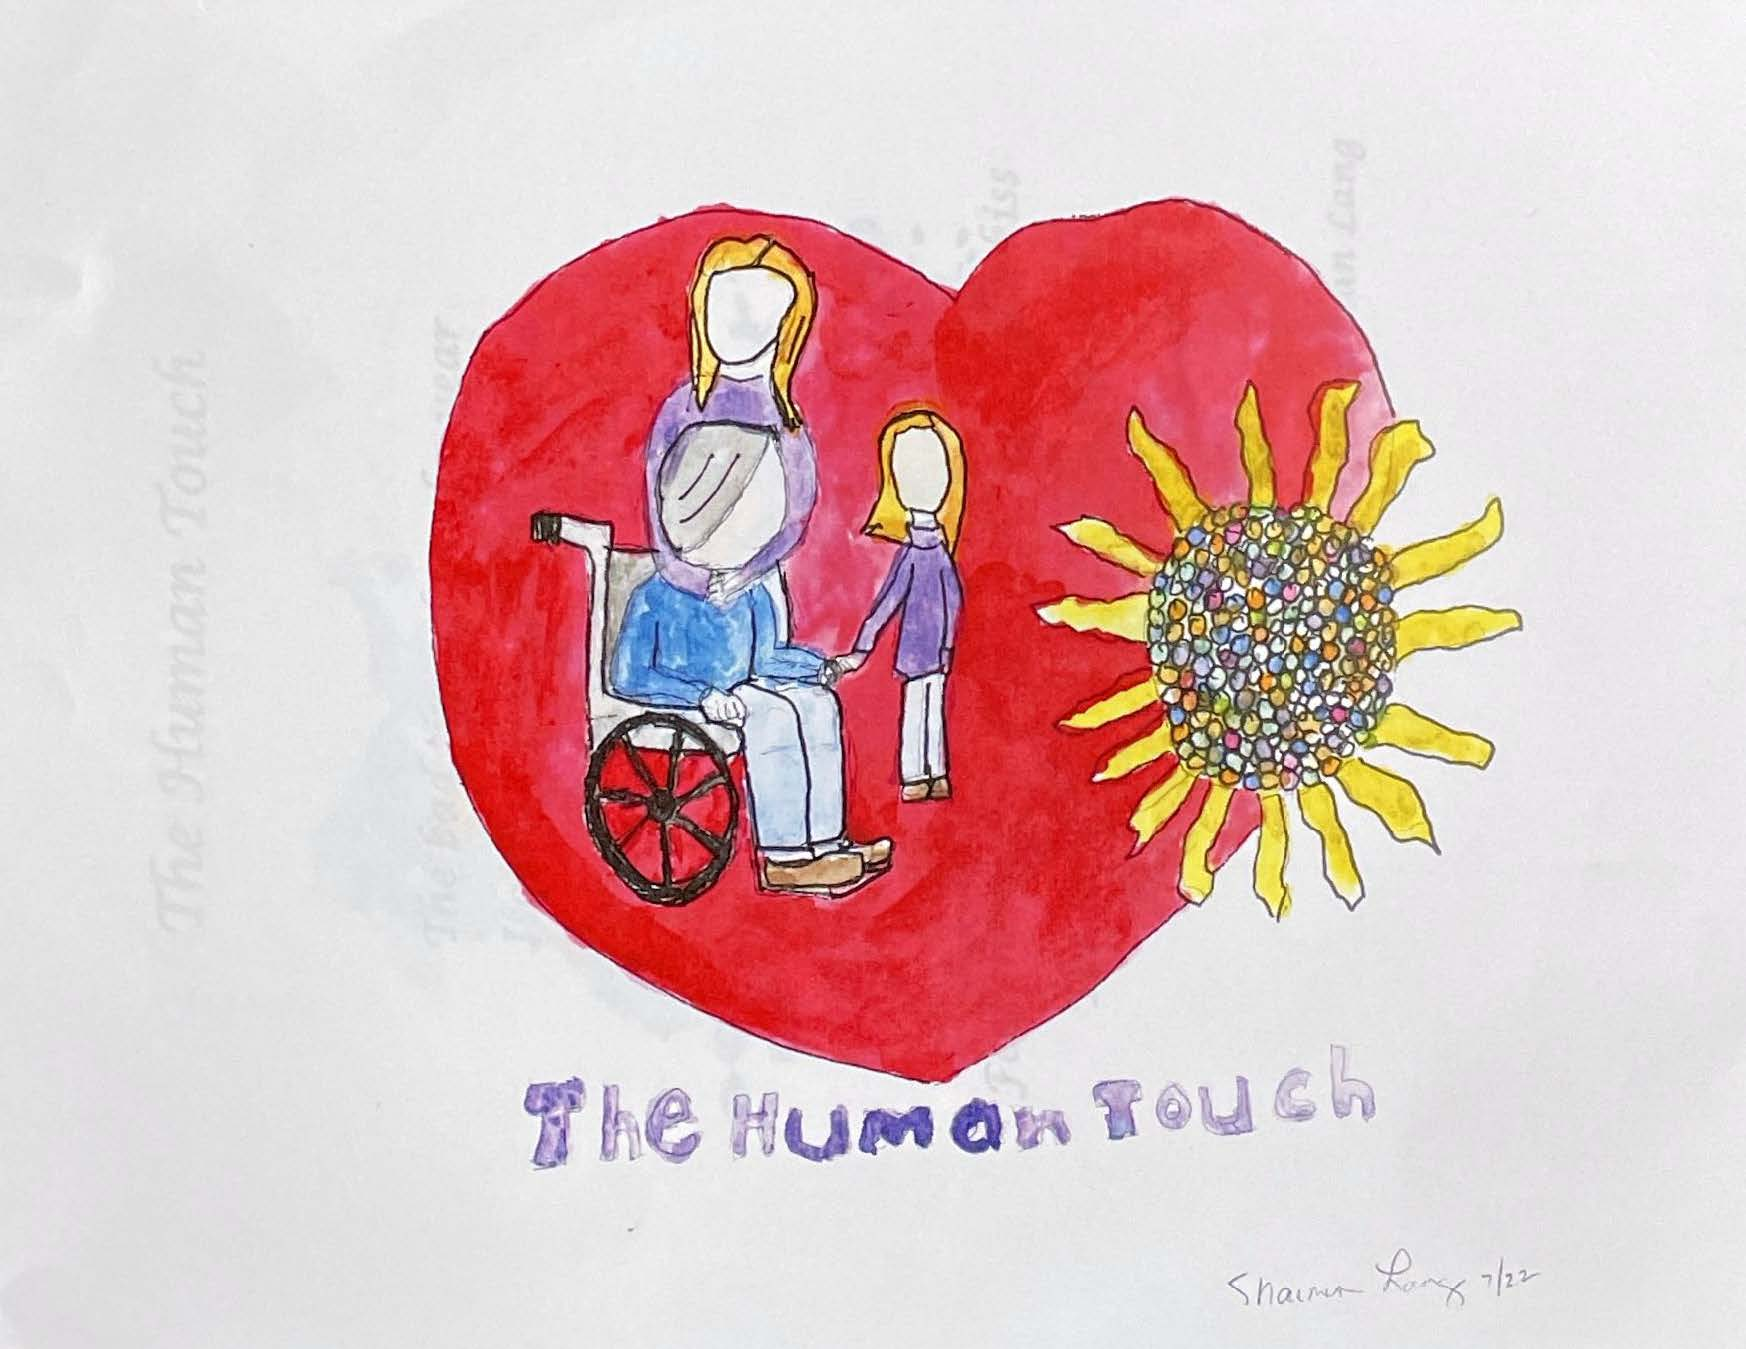 The Human Touch artwork